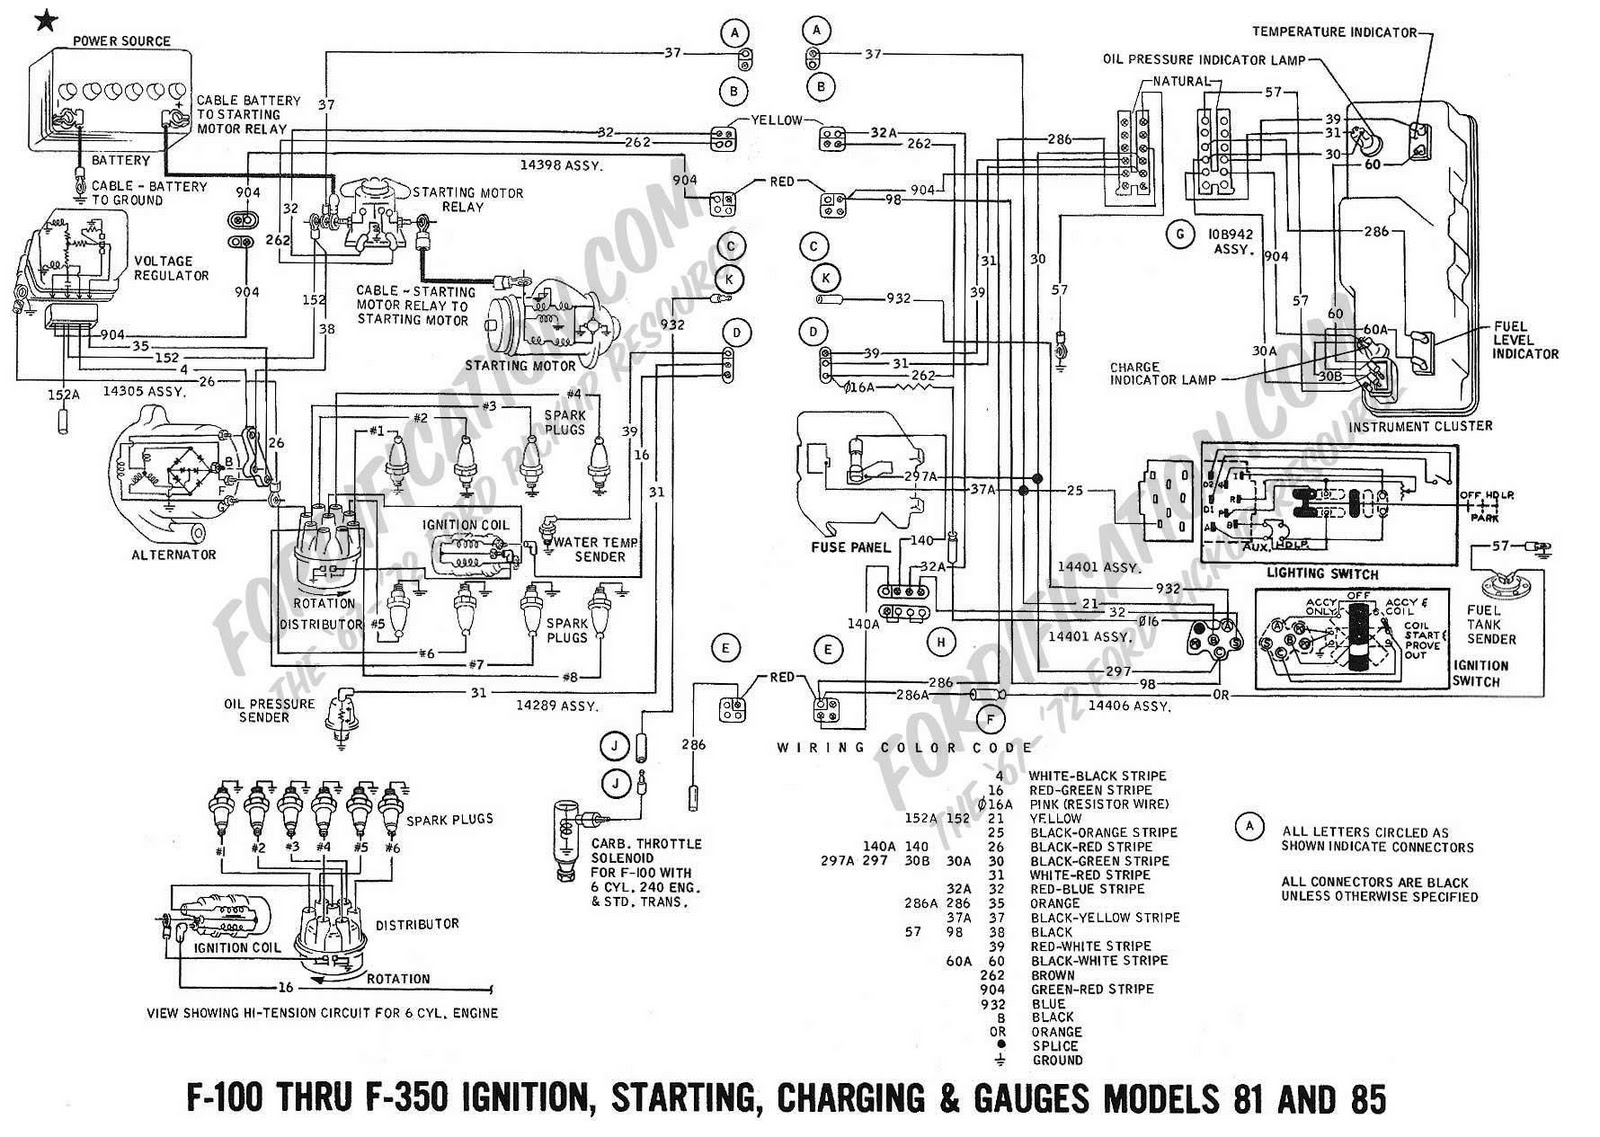 64 falcon wiring diagram wiring library ford falcon 1970 wiring diagram 1968 ford falcon wiring diagram [ 1600 x 1137 Pixel ]